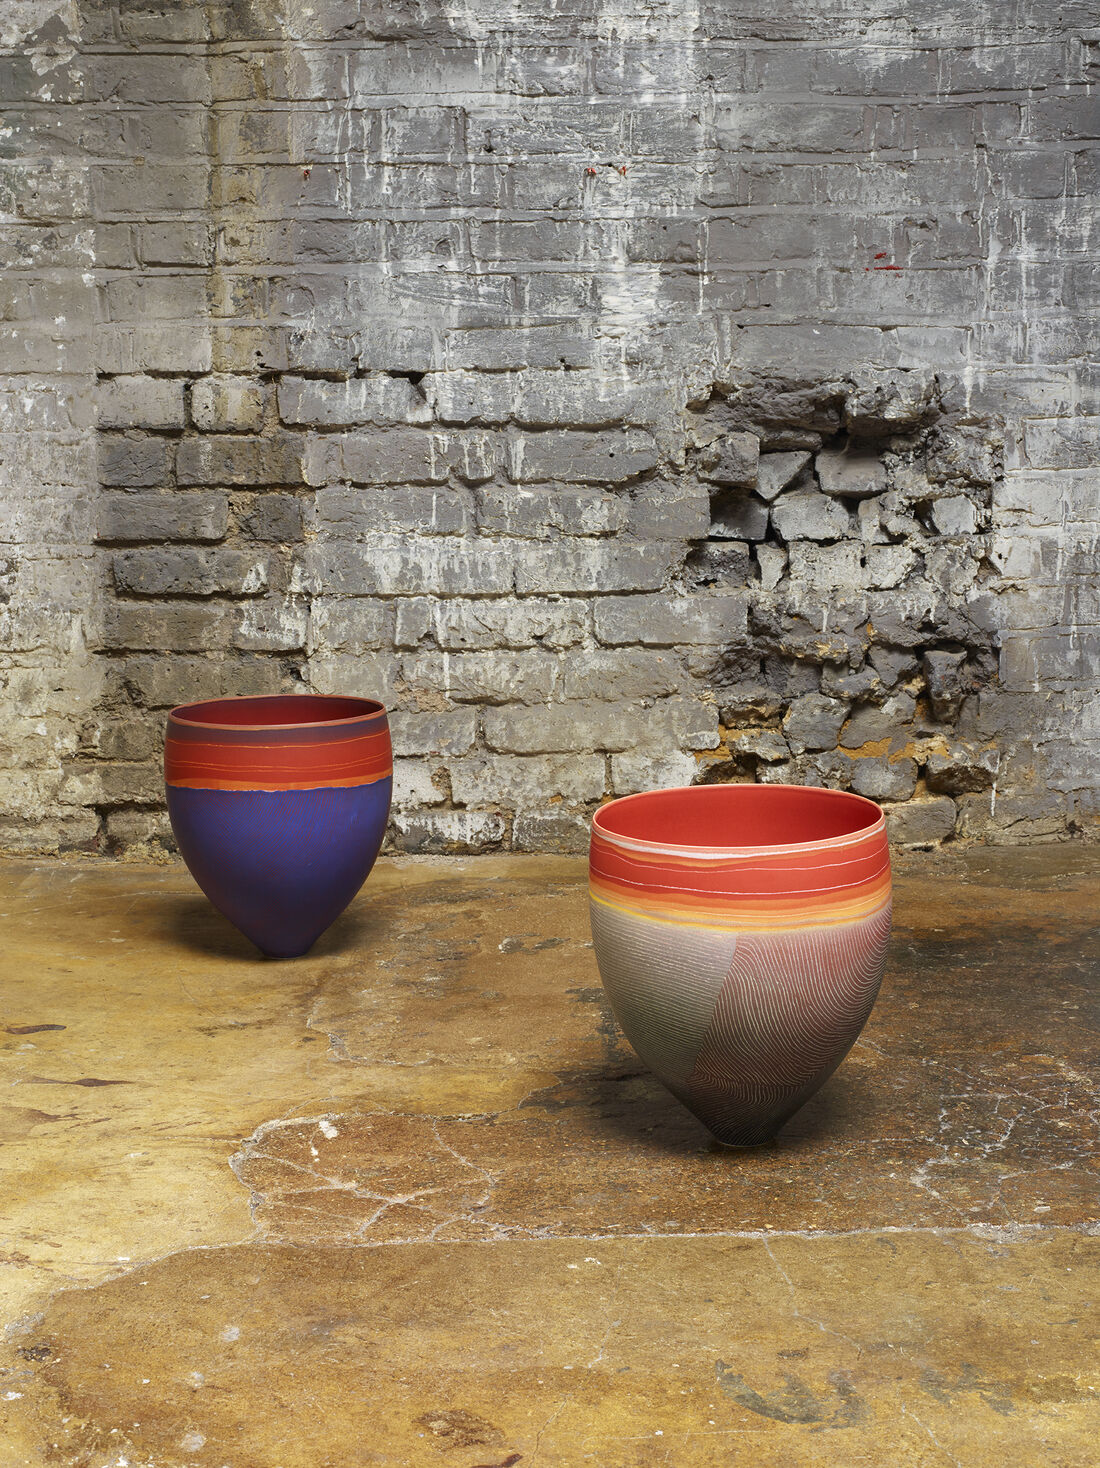 Dalmore Plains Tanami & Discovery Well vessels by Pippin Drysdale, represented by Joanna Bird Contemporary Collections. Photography by Angela Moore, styling by Despina Curtis.